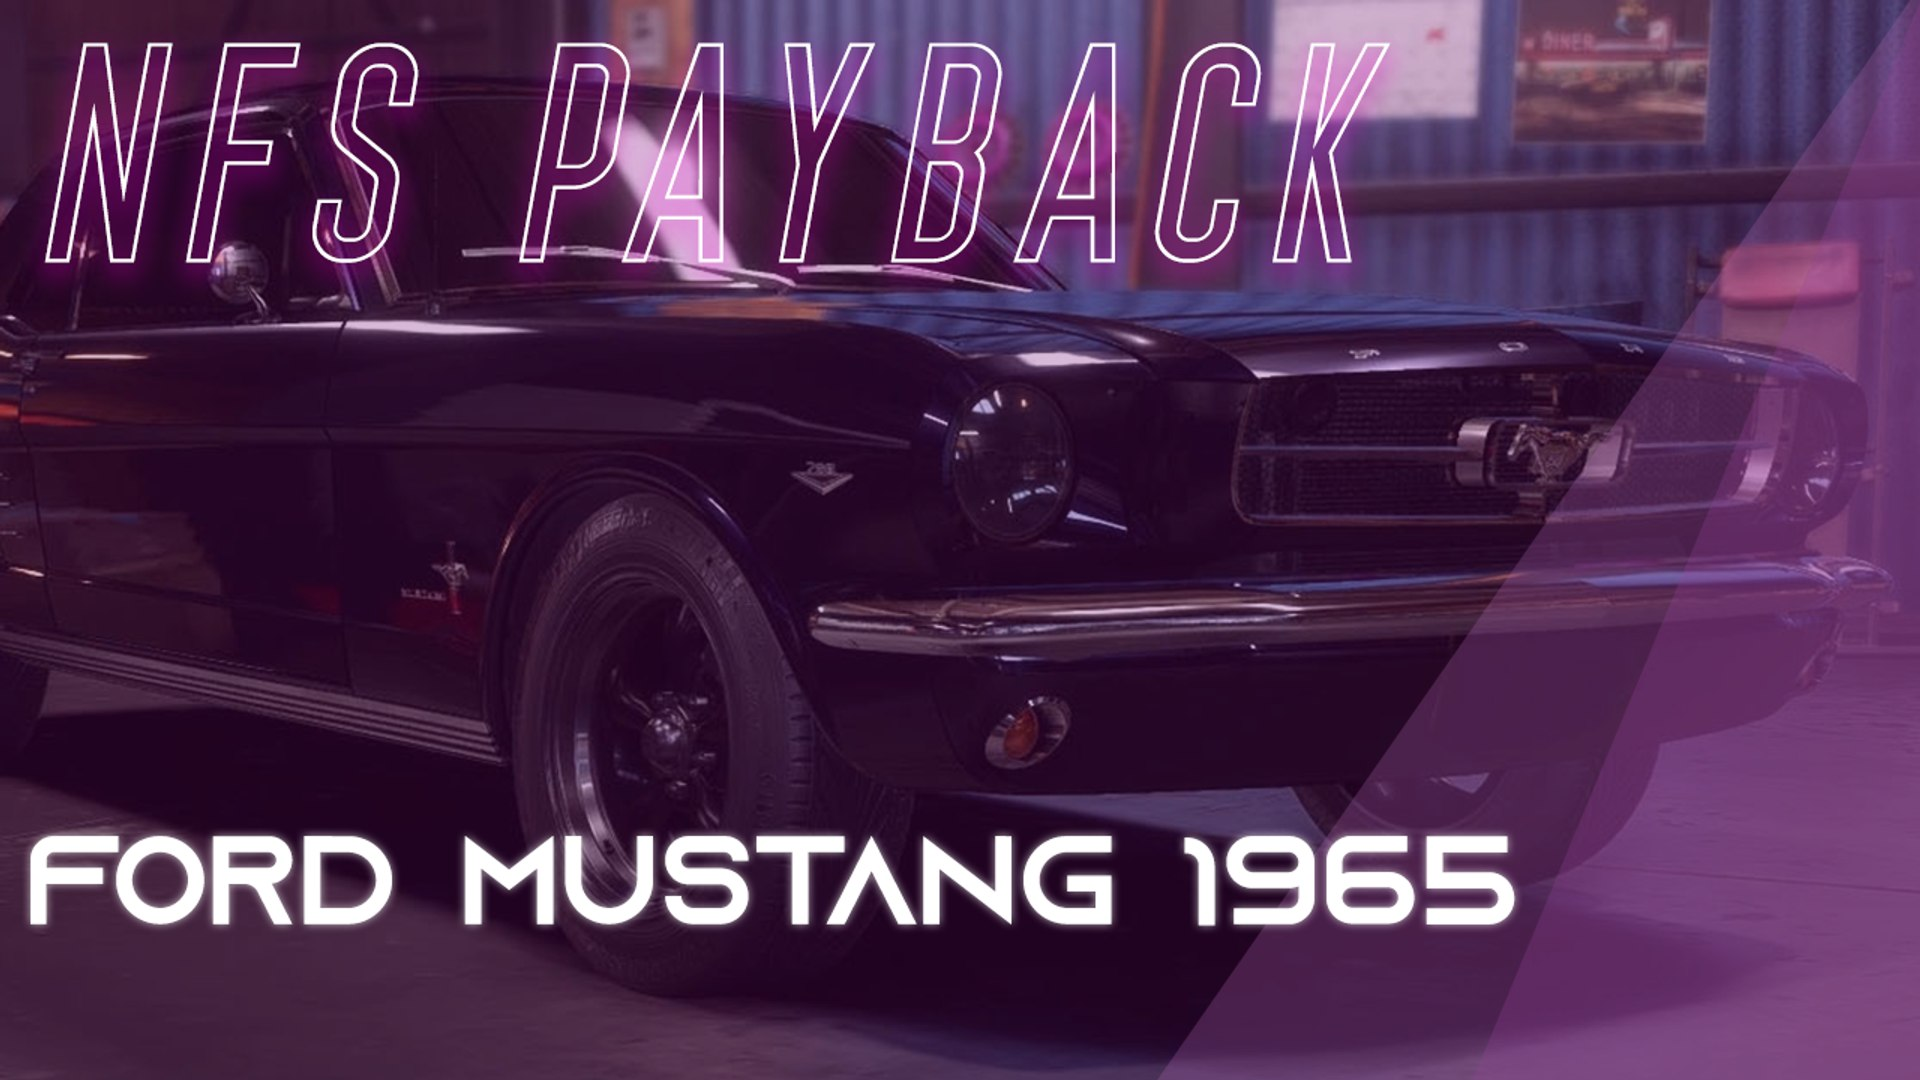 Need for speed payback : Comment avoir les pièce de la Ford Mustang 1965